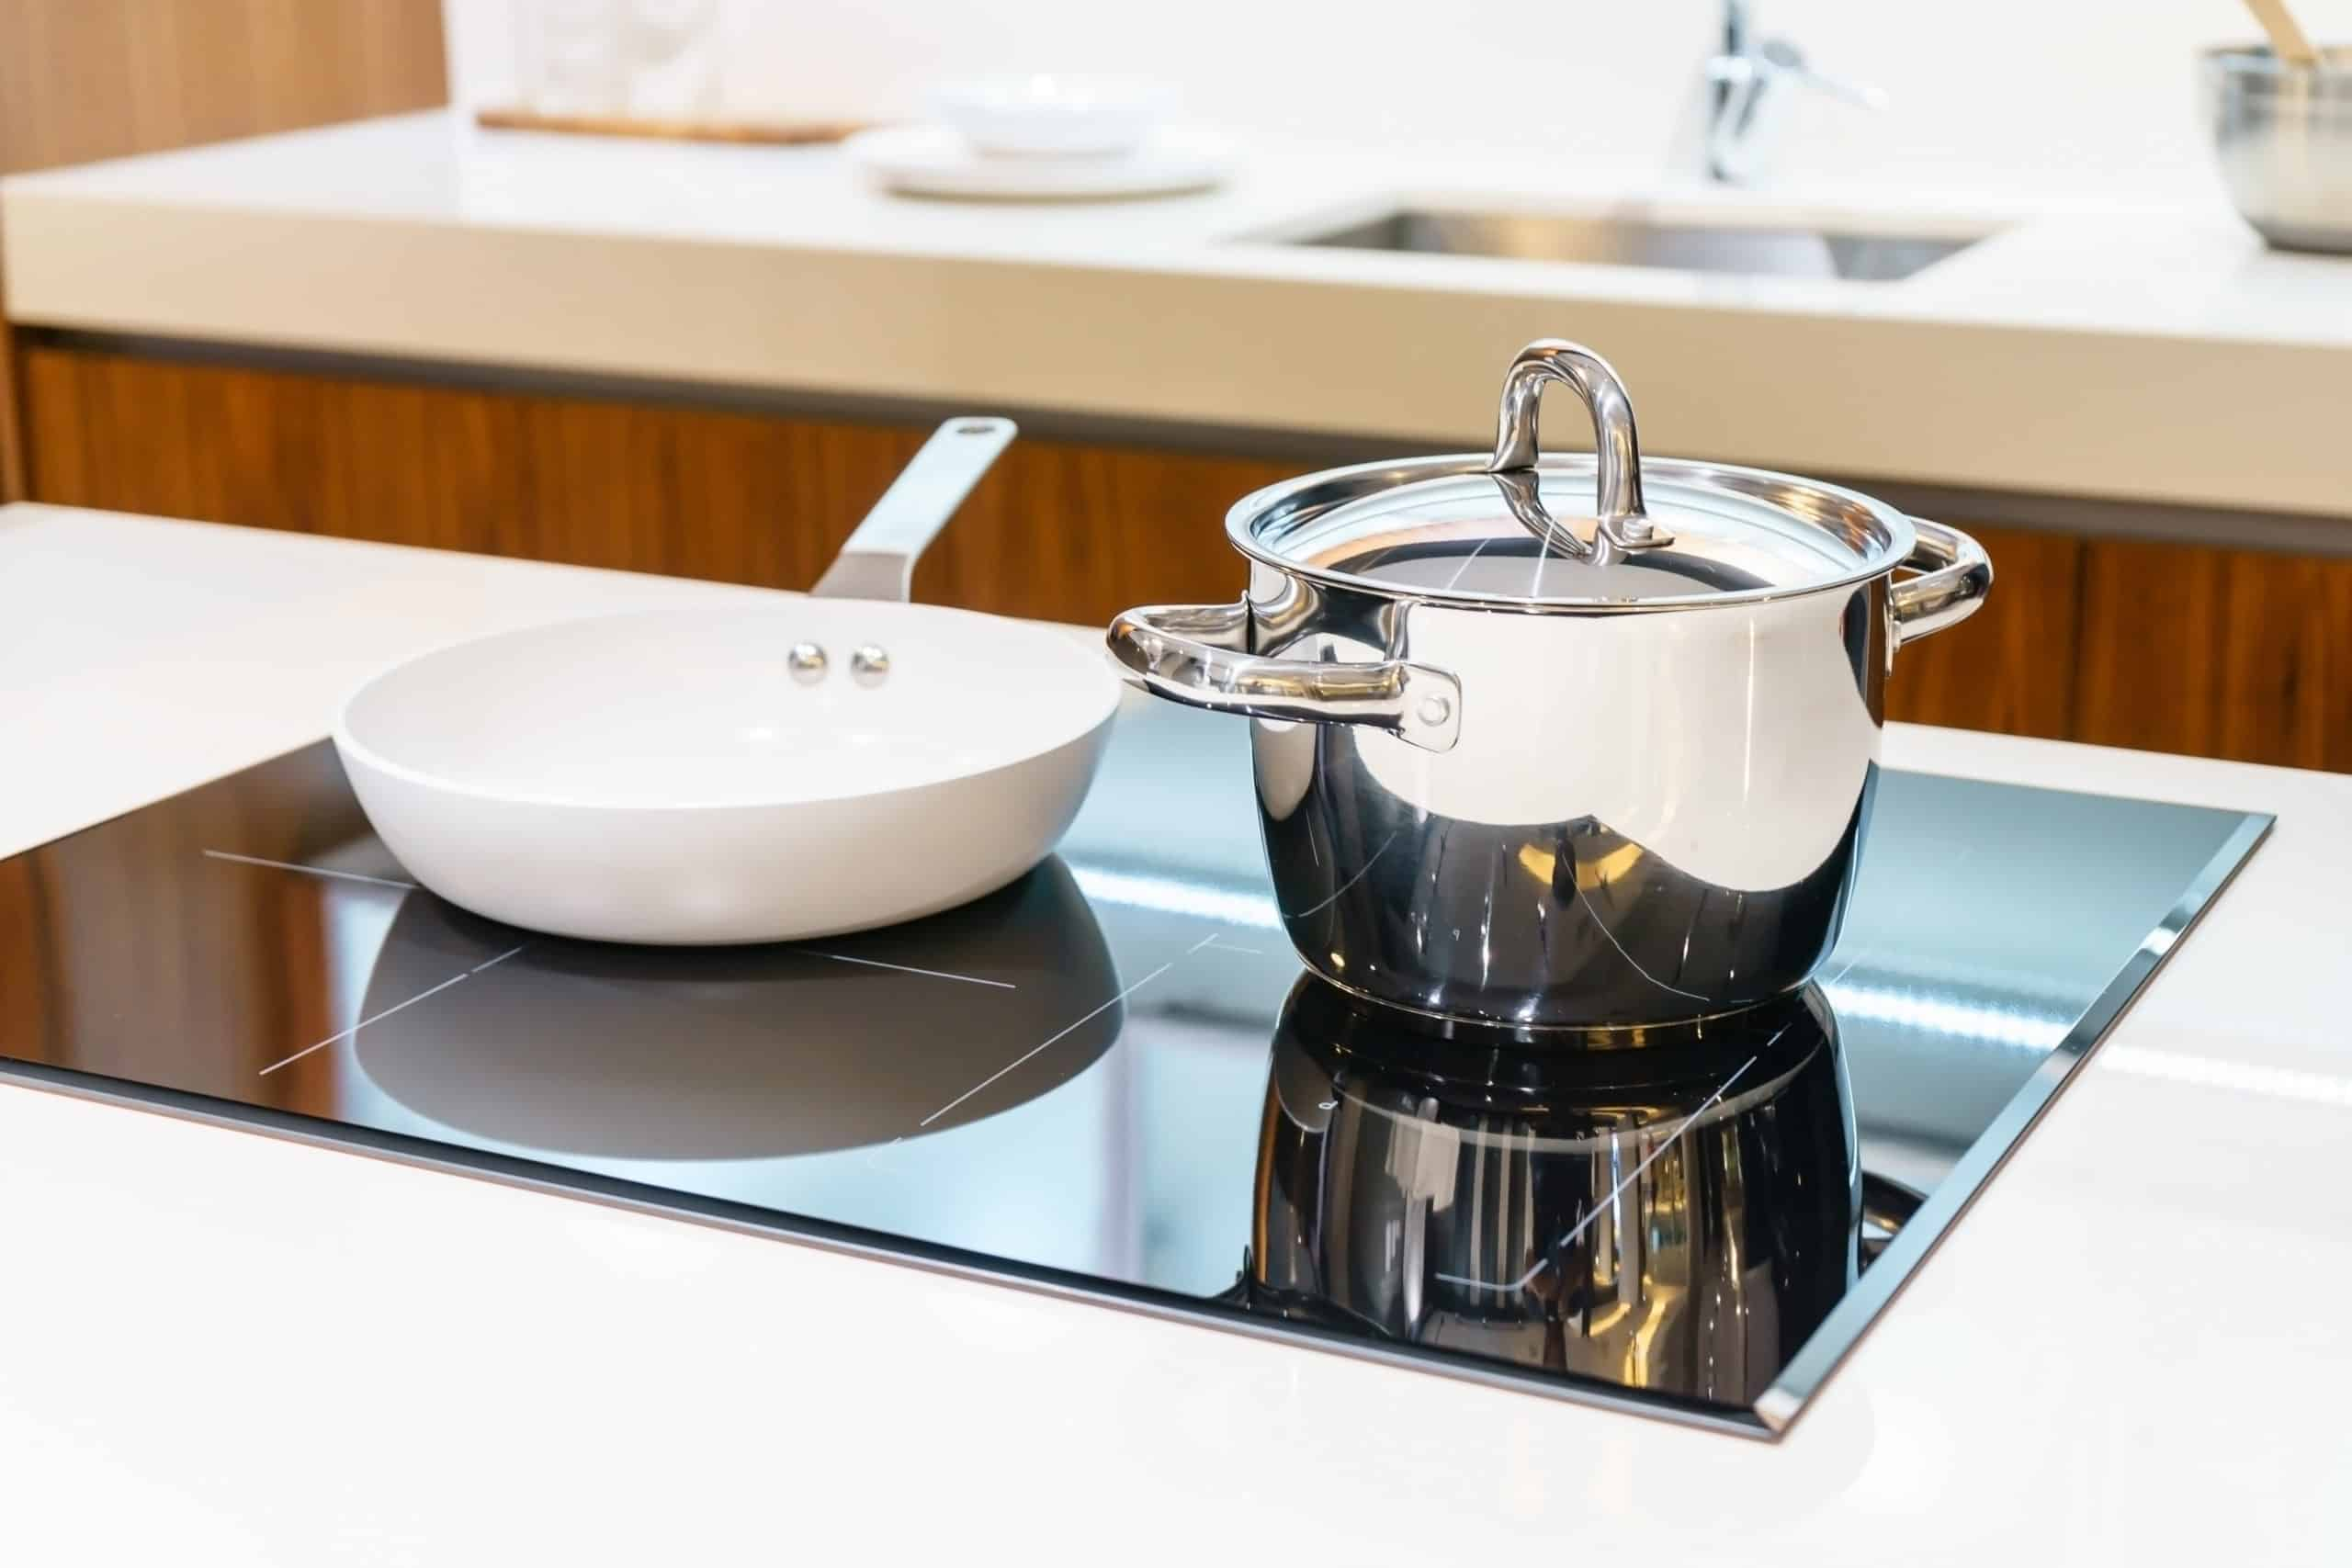 How to Check if Cookware is Induction Ready